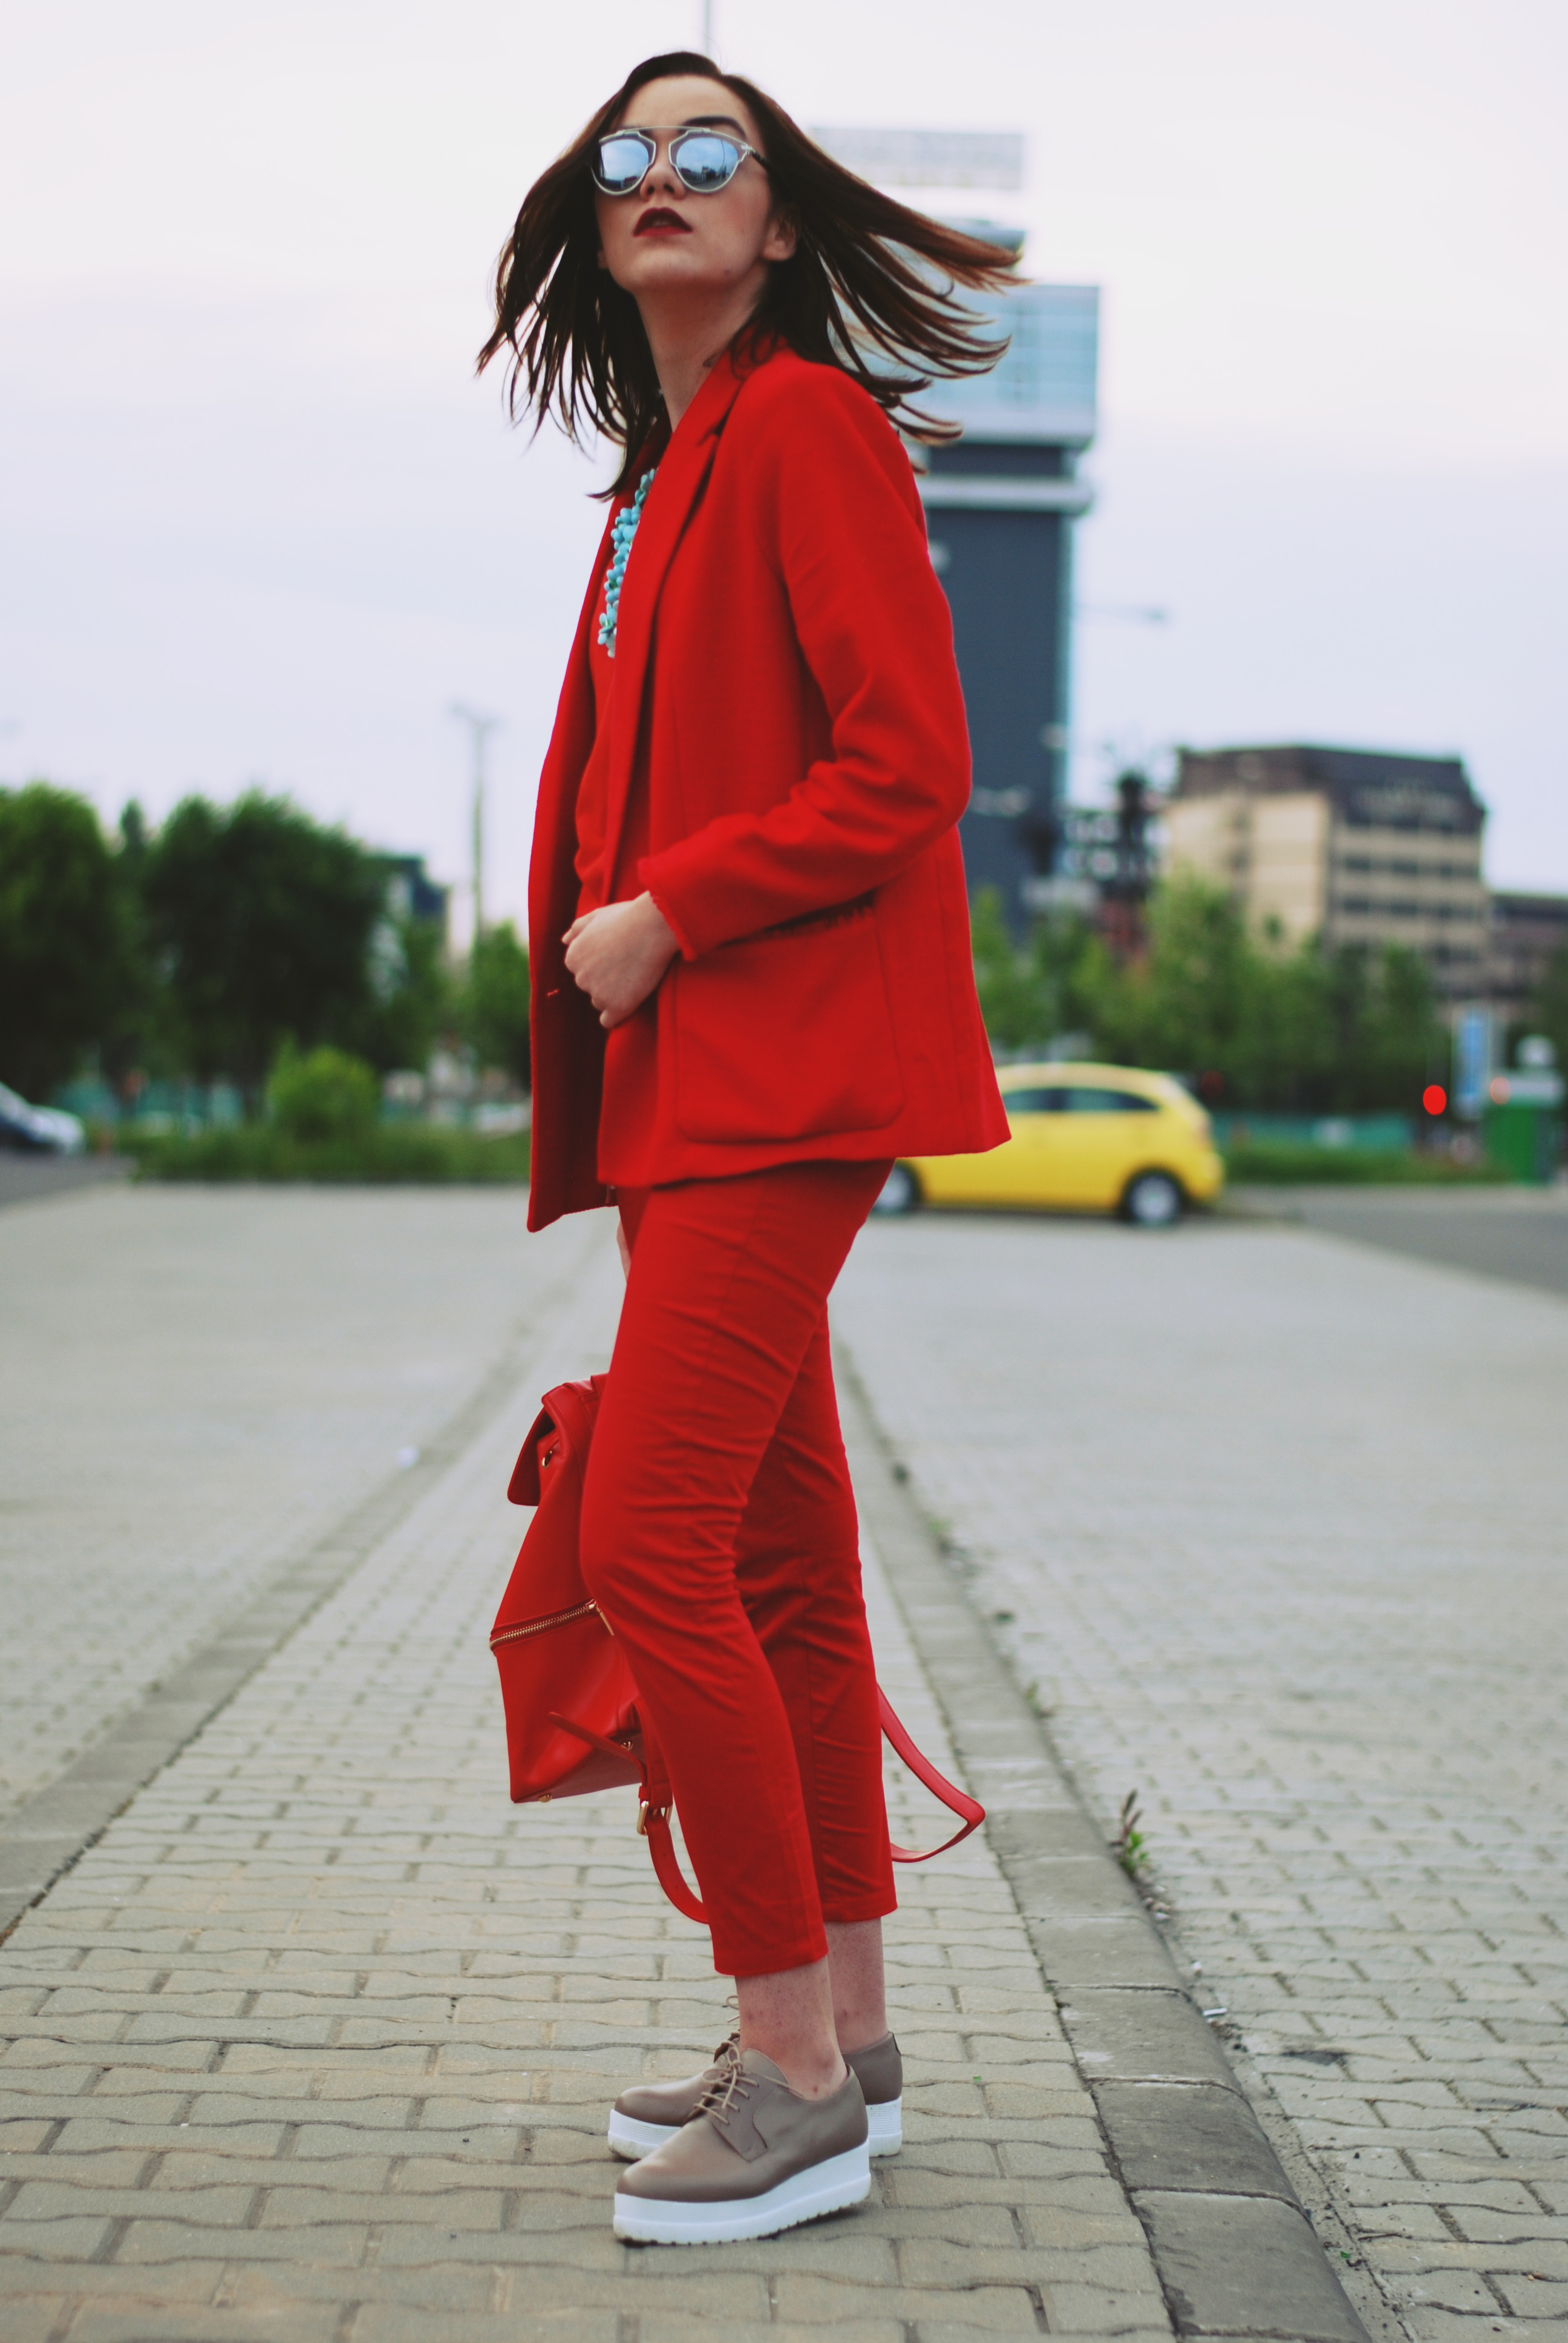 The urban red outfit • Couturezilla